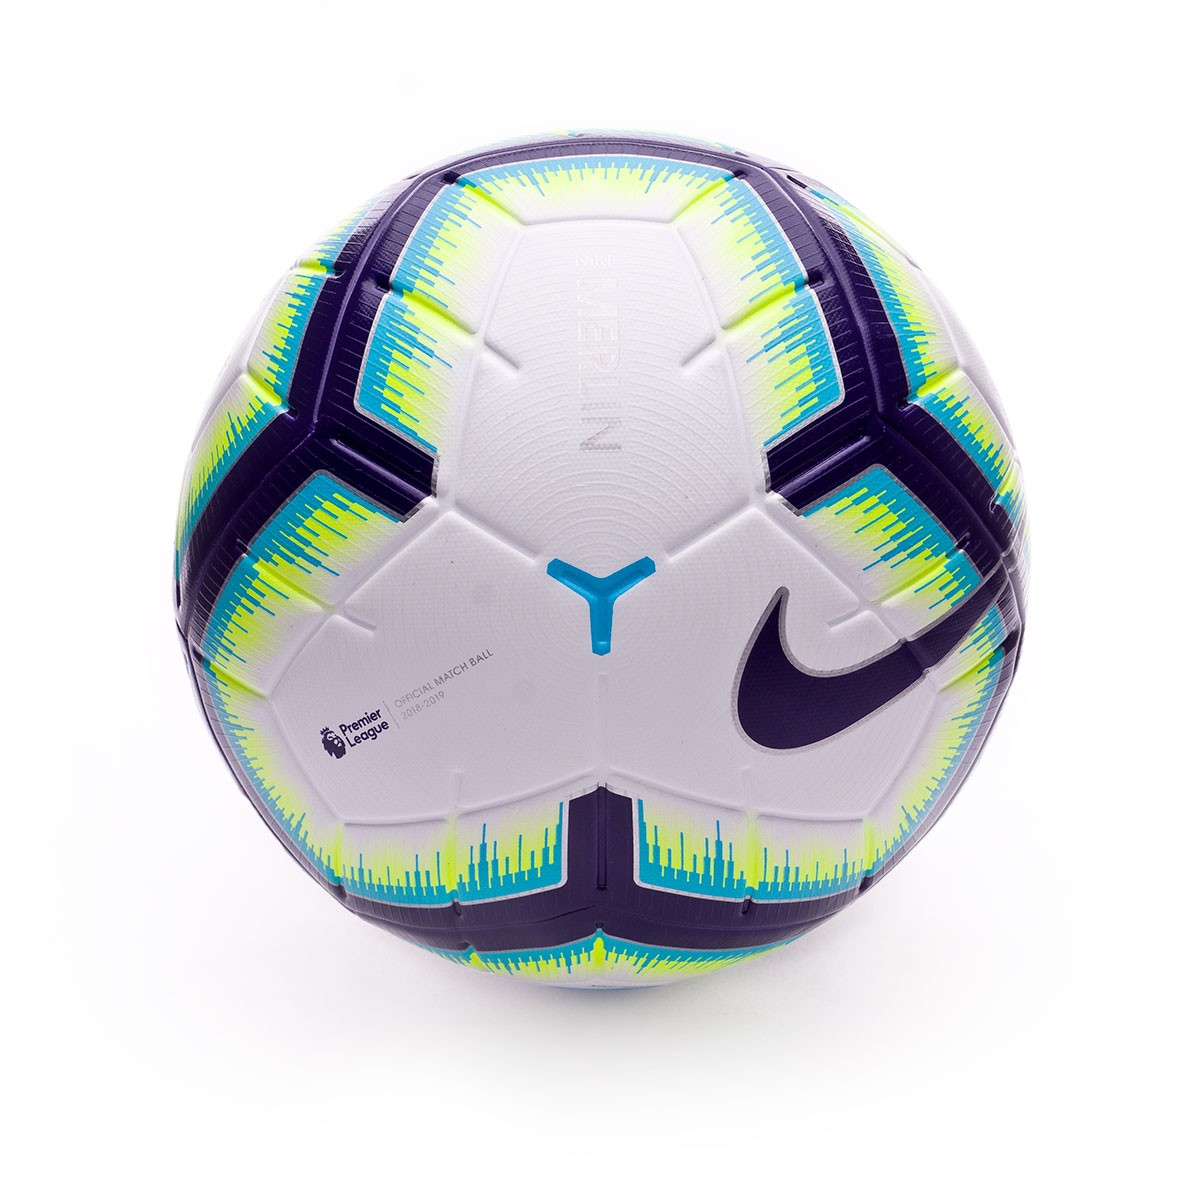 Ball Nike Premier League Merlin 2018-2019 White-Blue-Purple ... 8d02769422f2f